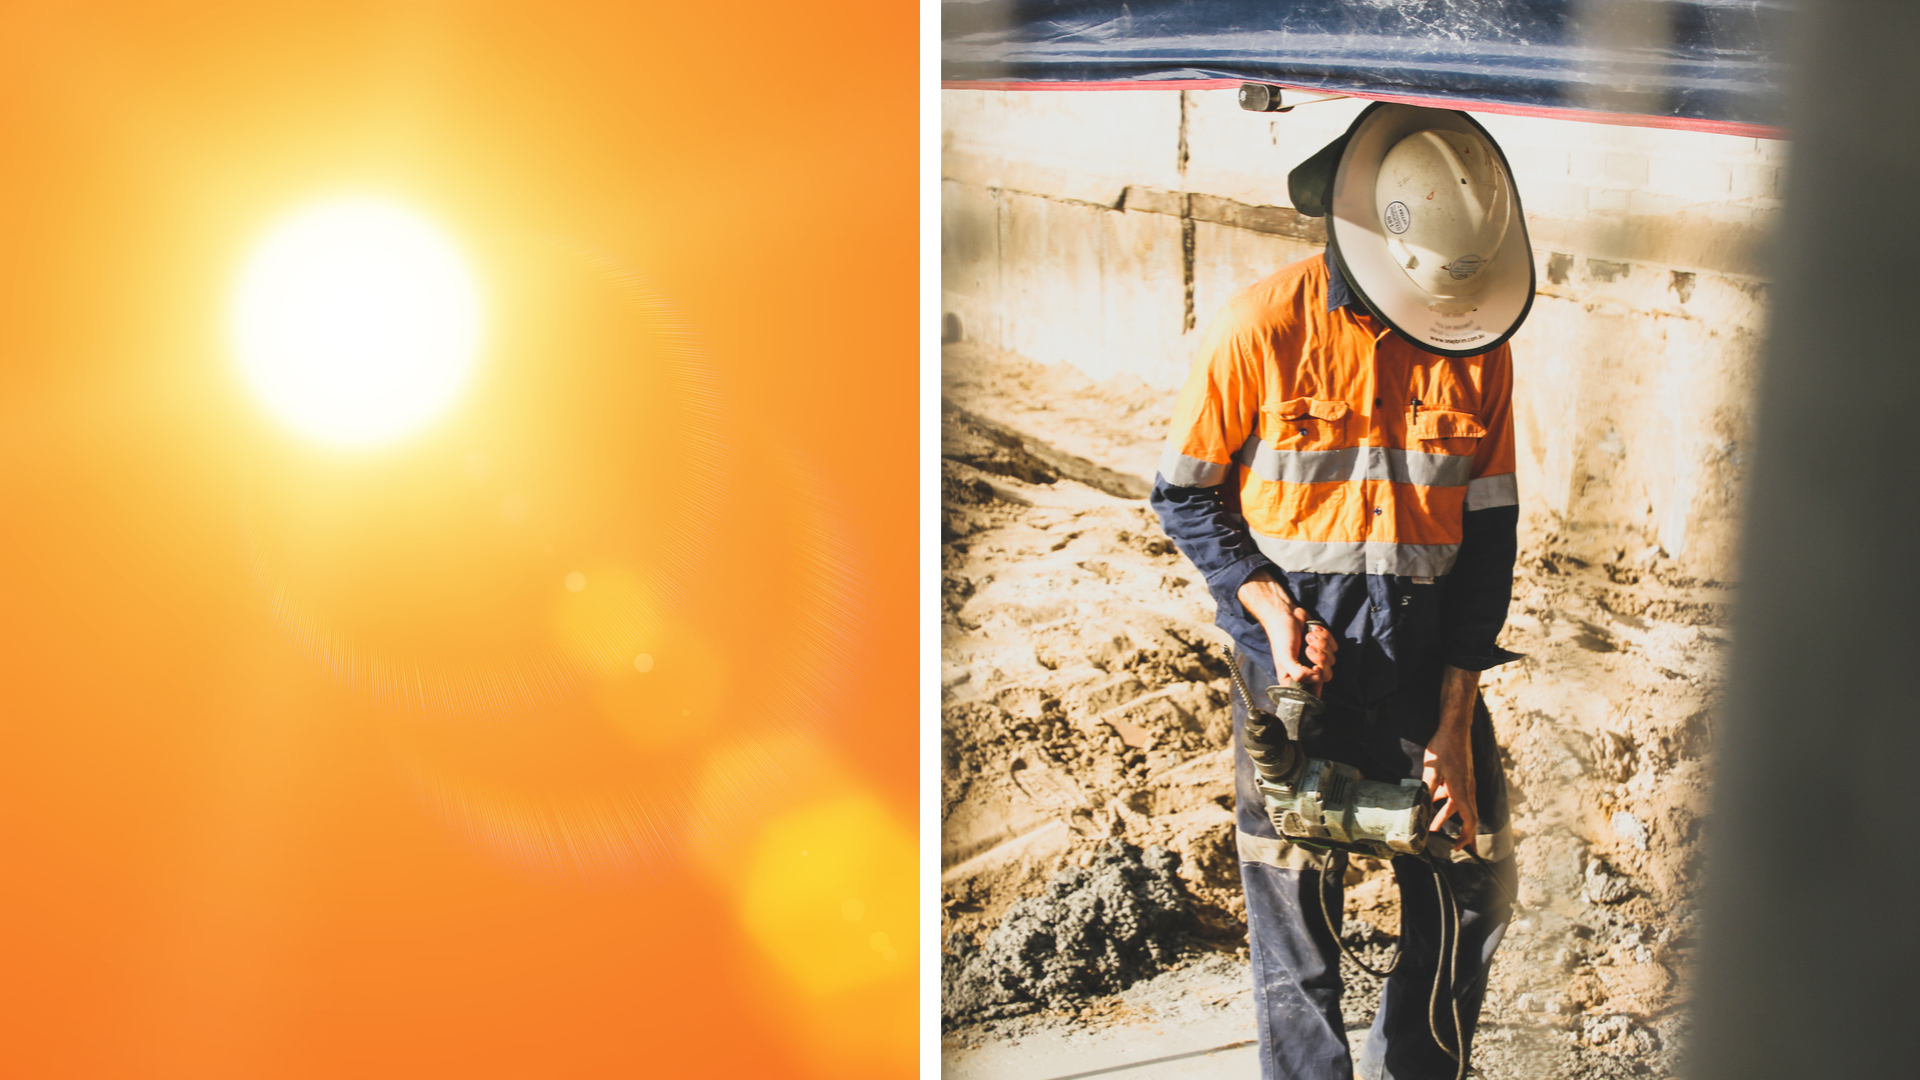 Tradies to walk off the job when mercury hits 28C under divisive policy